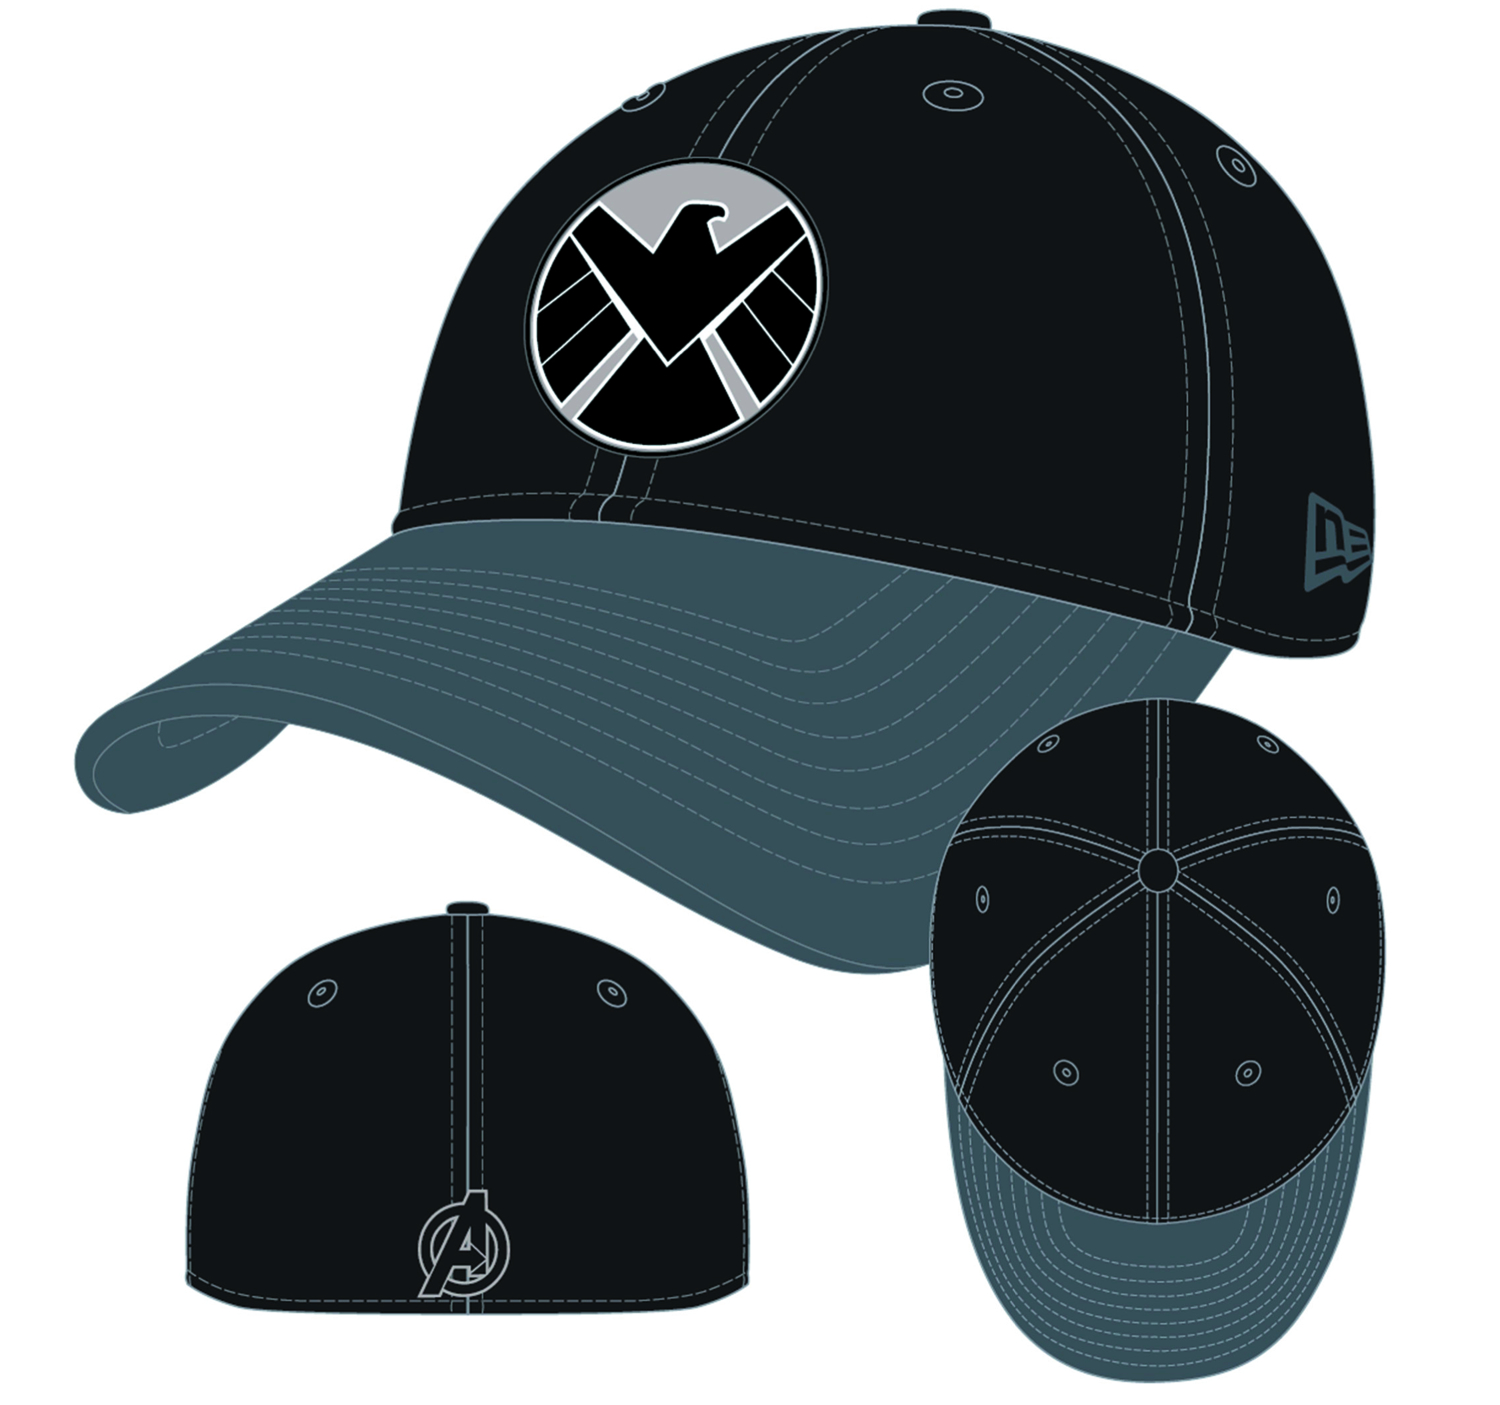 AVENGERS SHIELD LOGO DYAD FLEX FIT CAP M/L